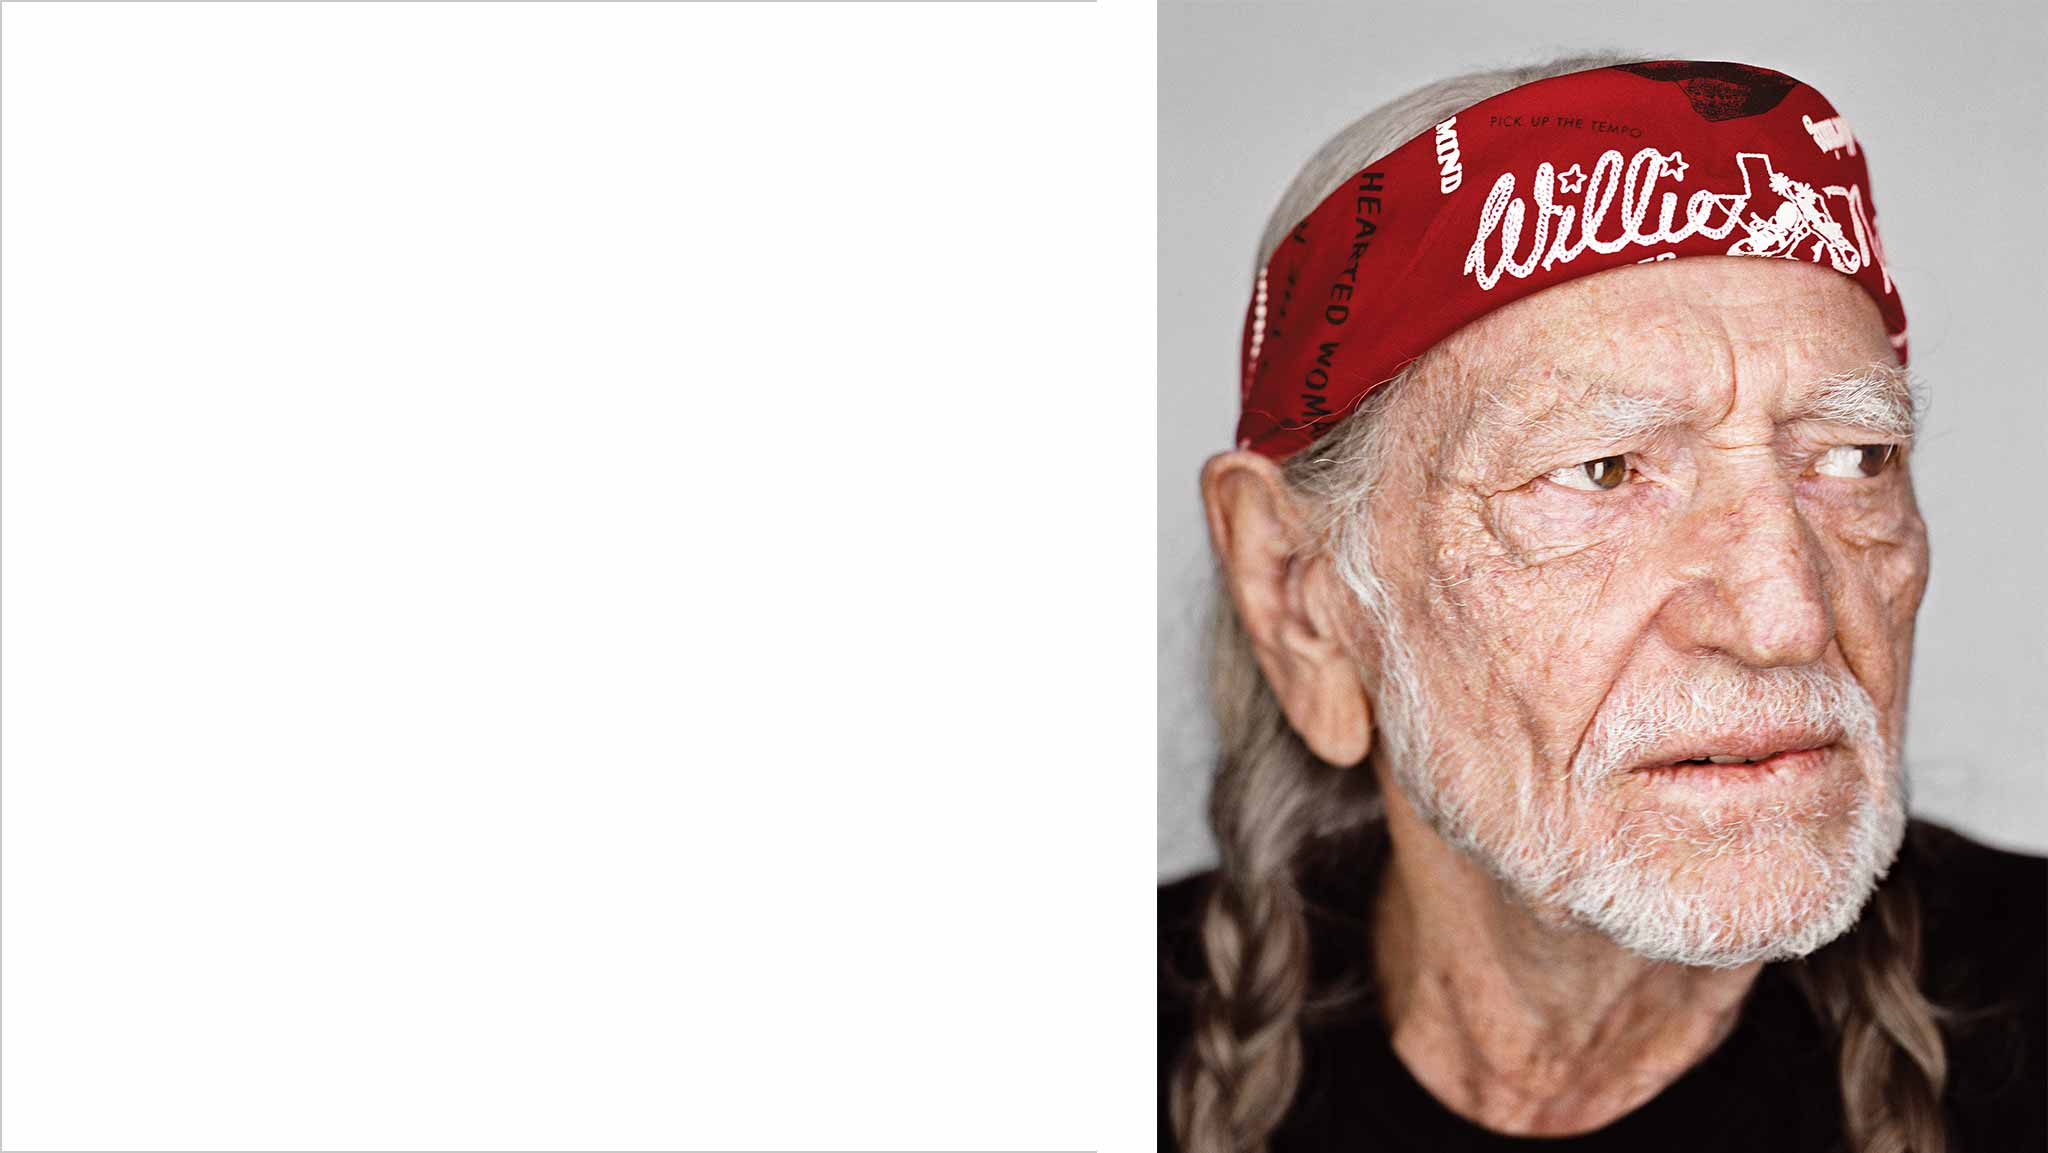 HQ Willie Nelson Wallpapers | File 95.98Kb